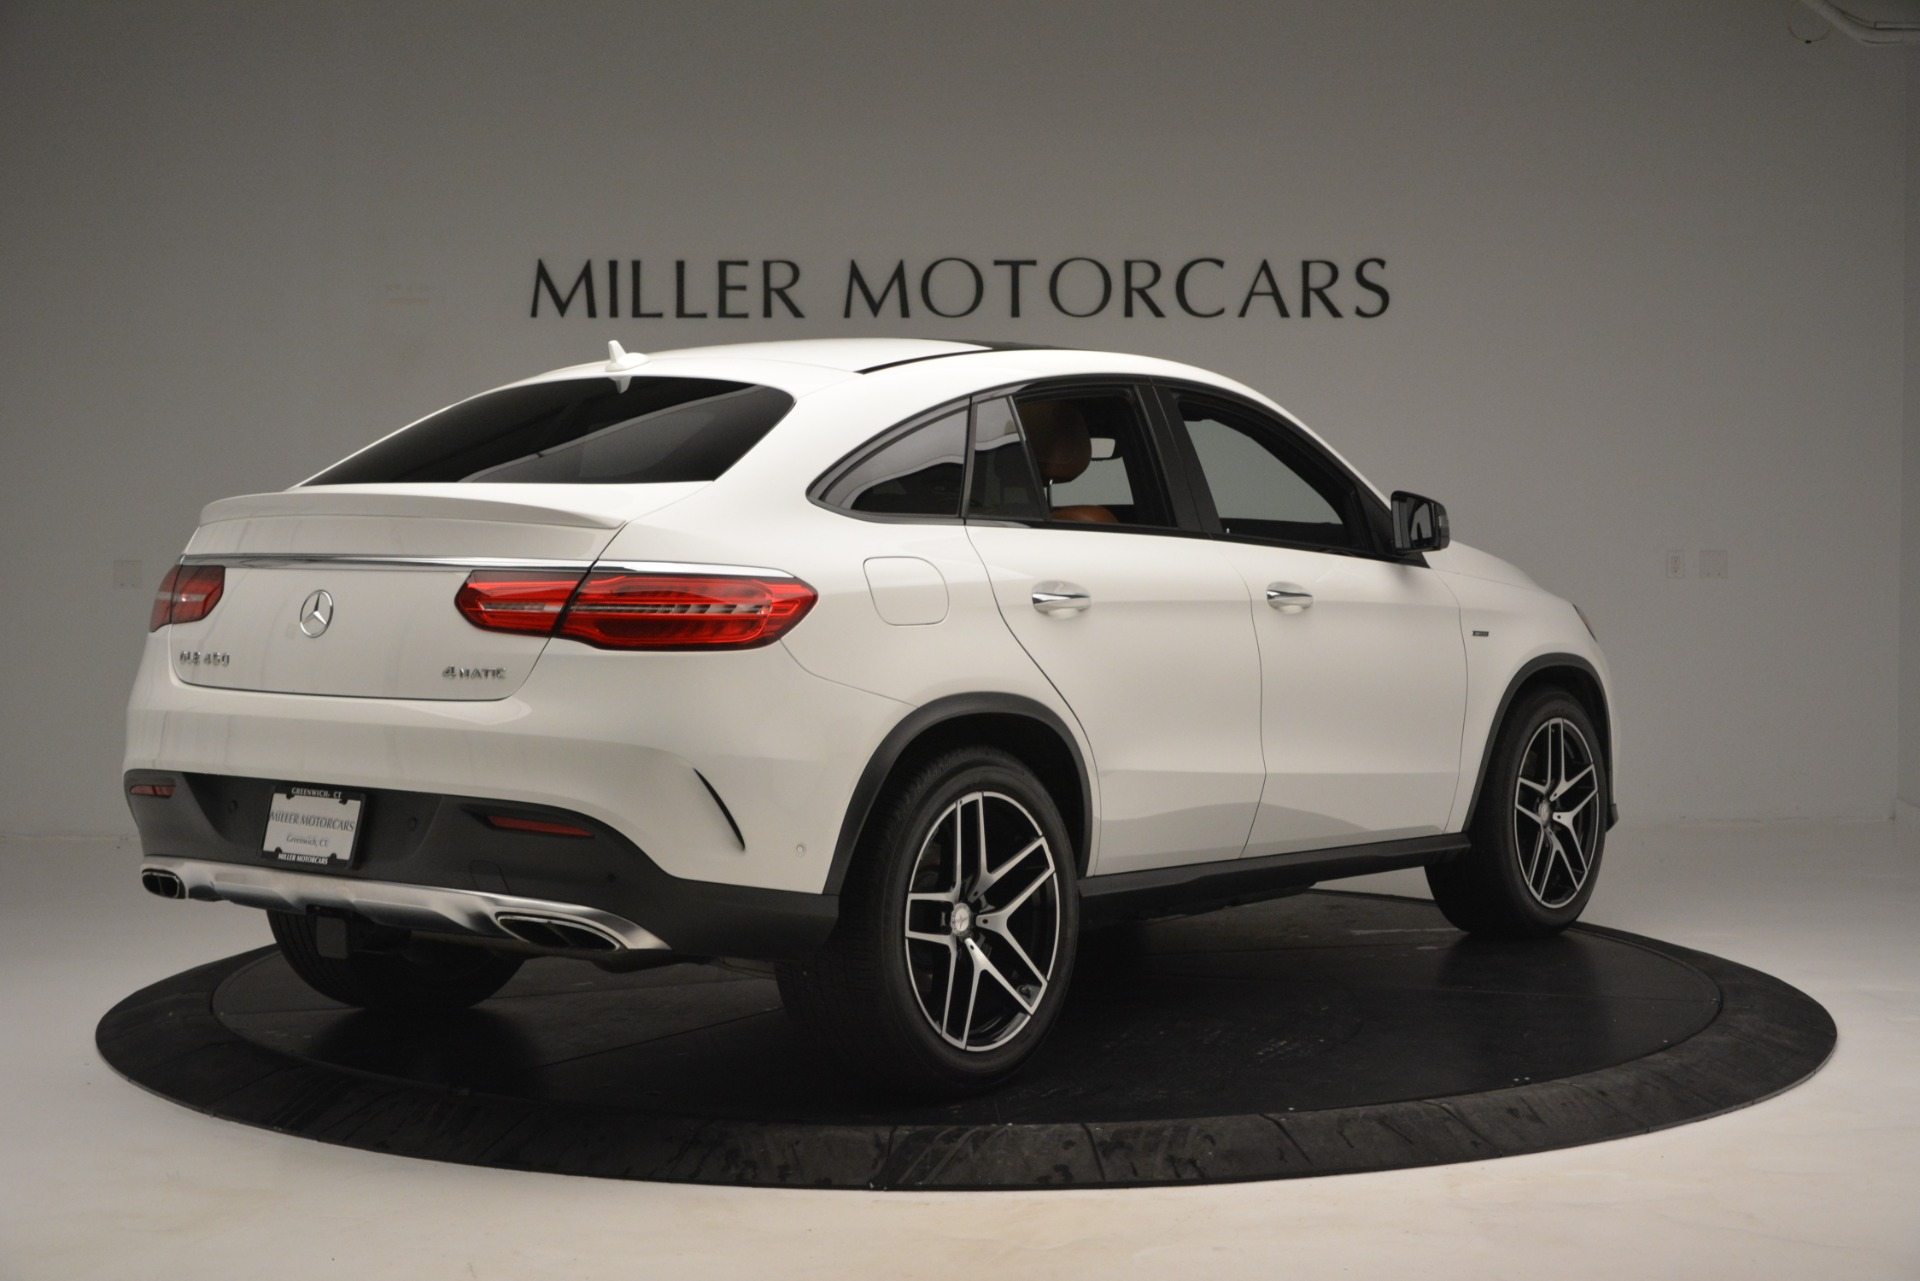 Used 2016 Mercedes-Benz GLE 450 AMG Coupe 4MATIC For Sale In Greenwich, CT 2787_p8